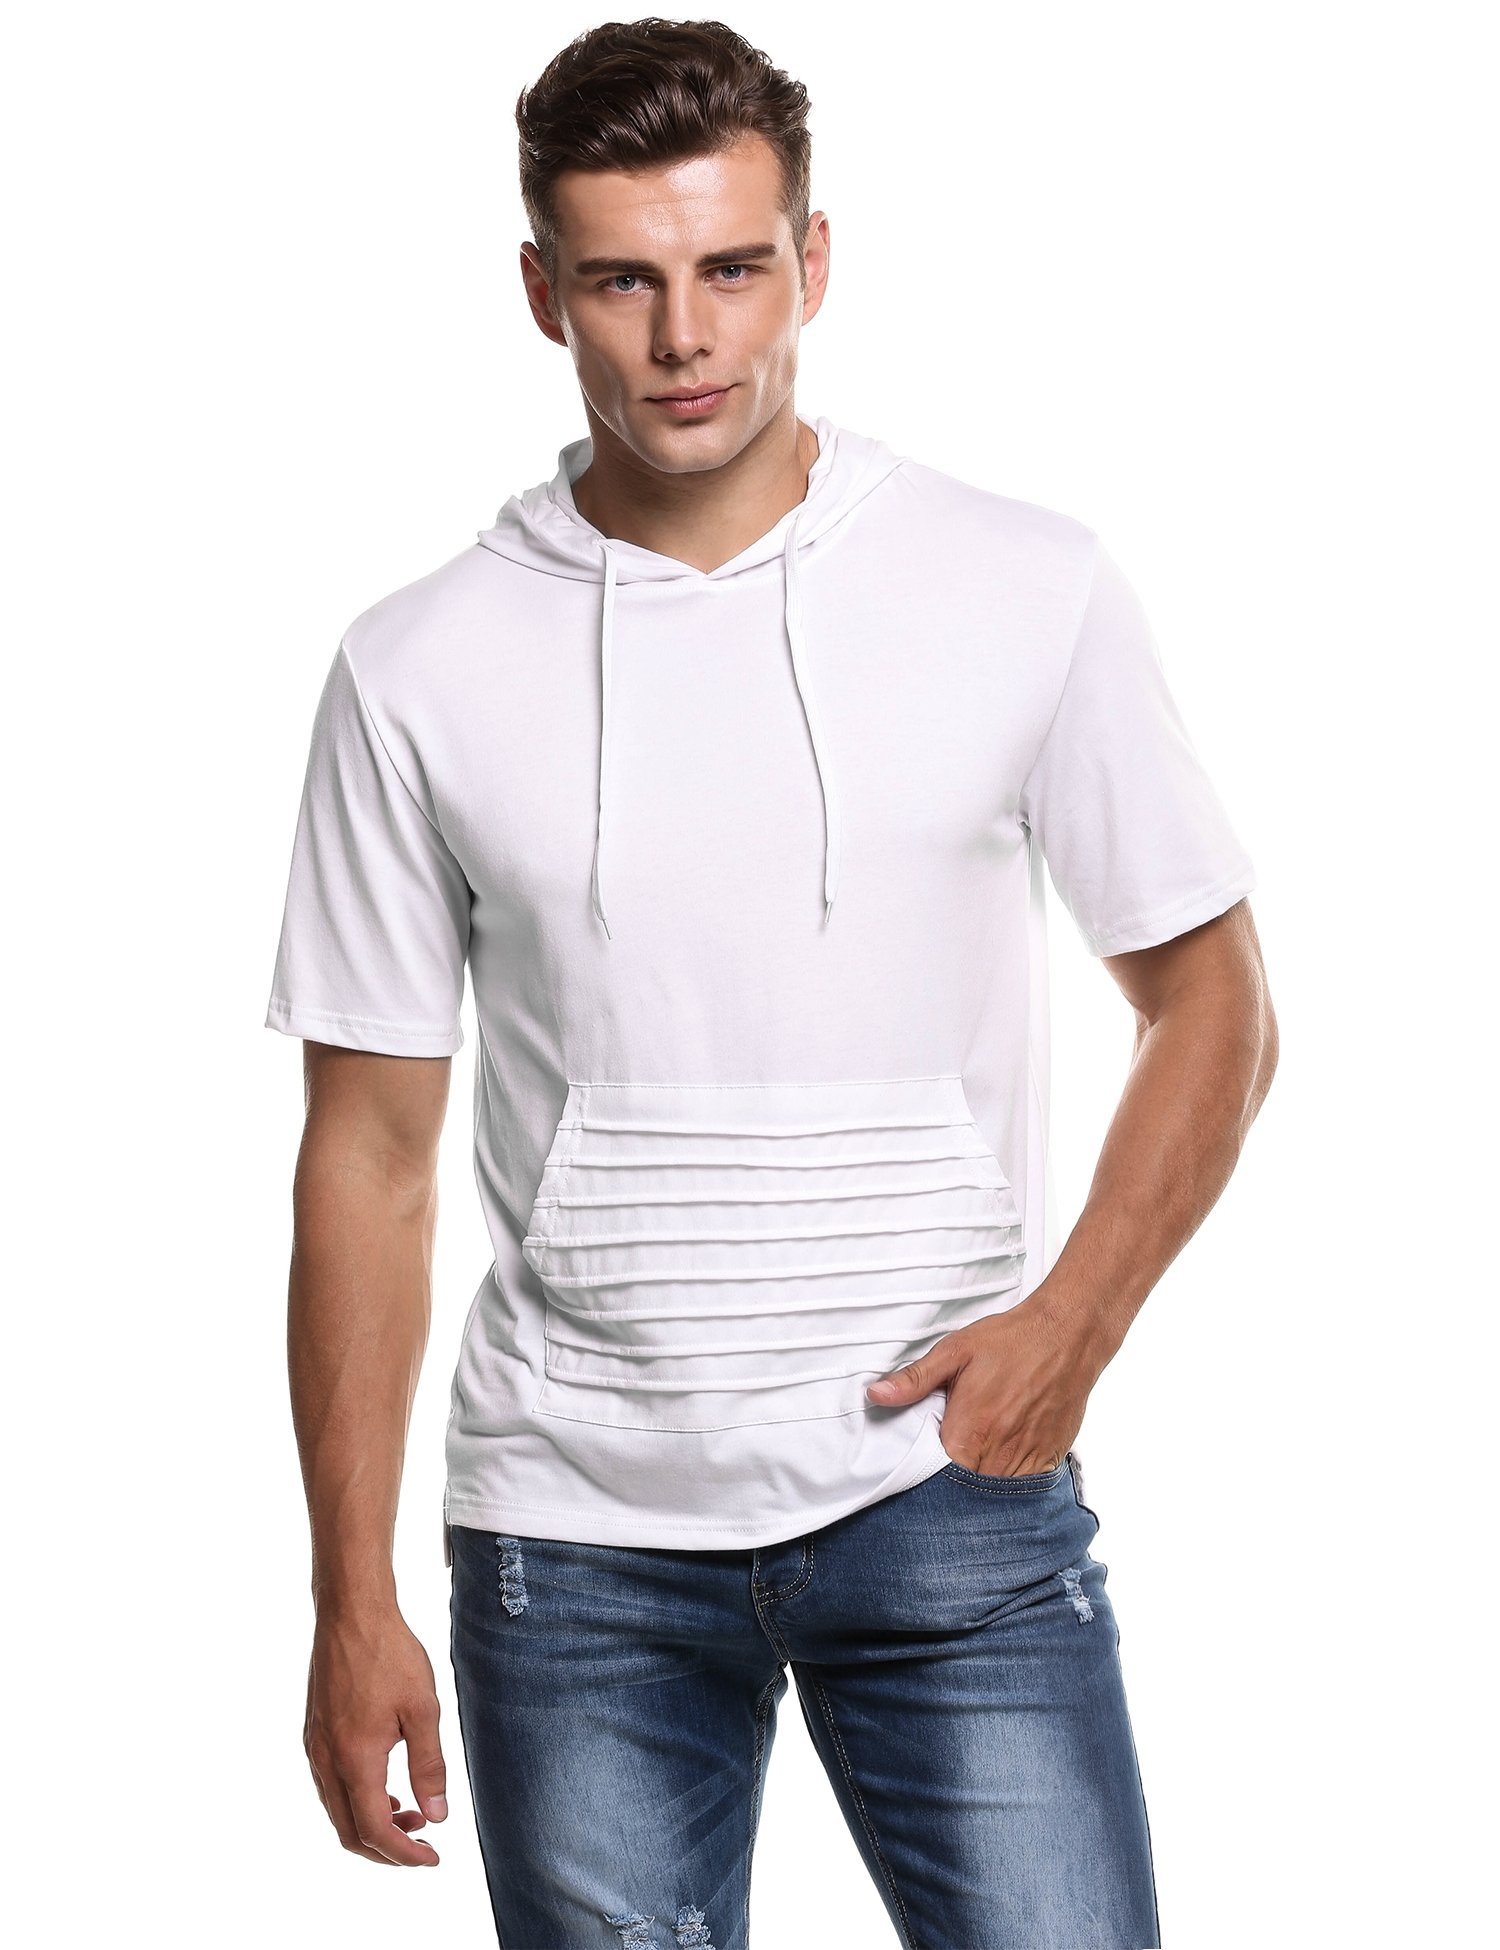 Hotouch Men's Fashion Summer Short Sleeves T-Shirt Hoodie (White XL)